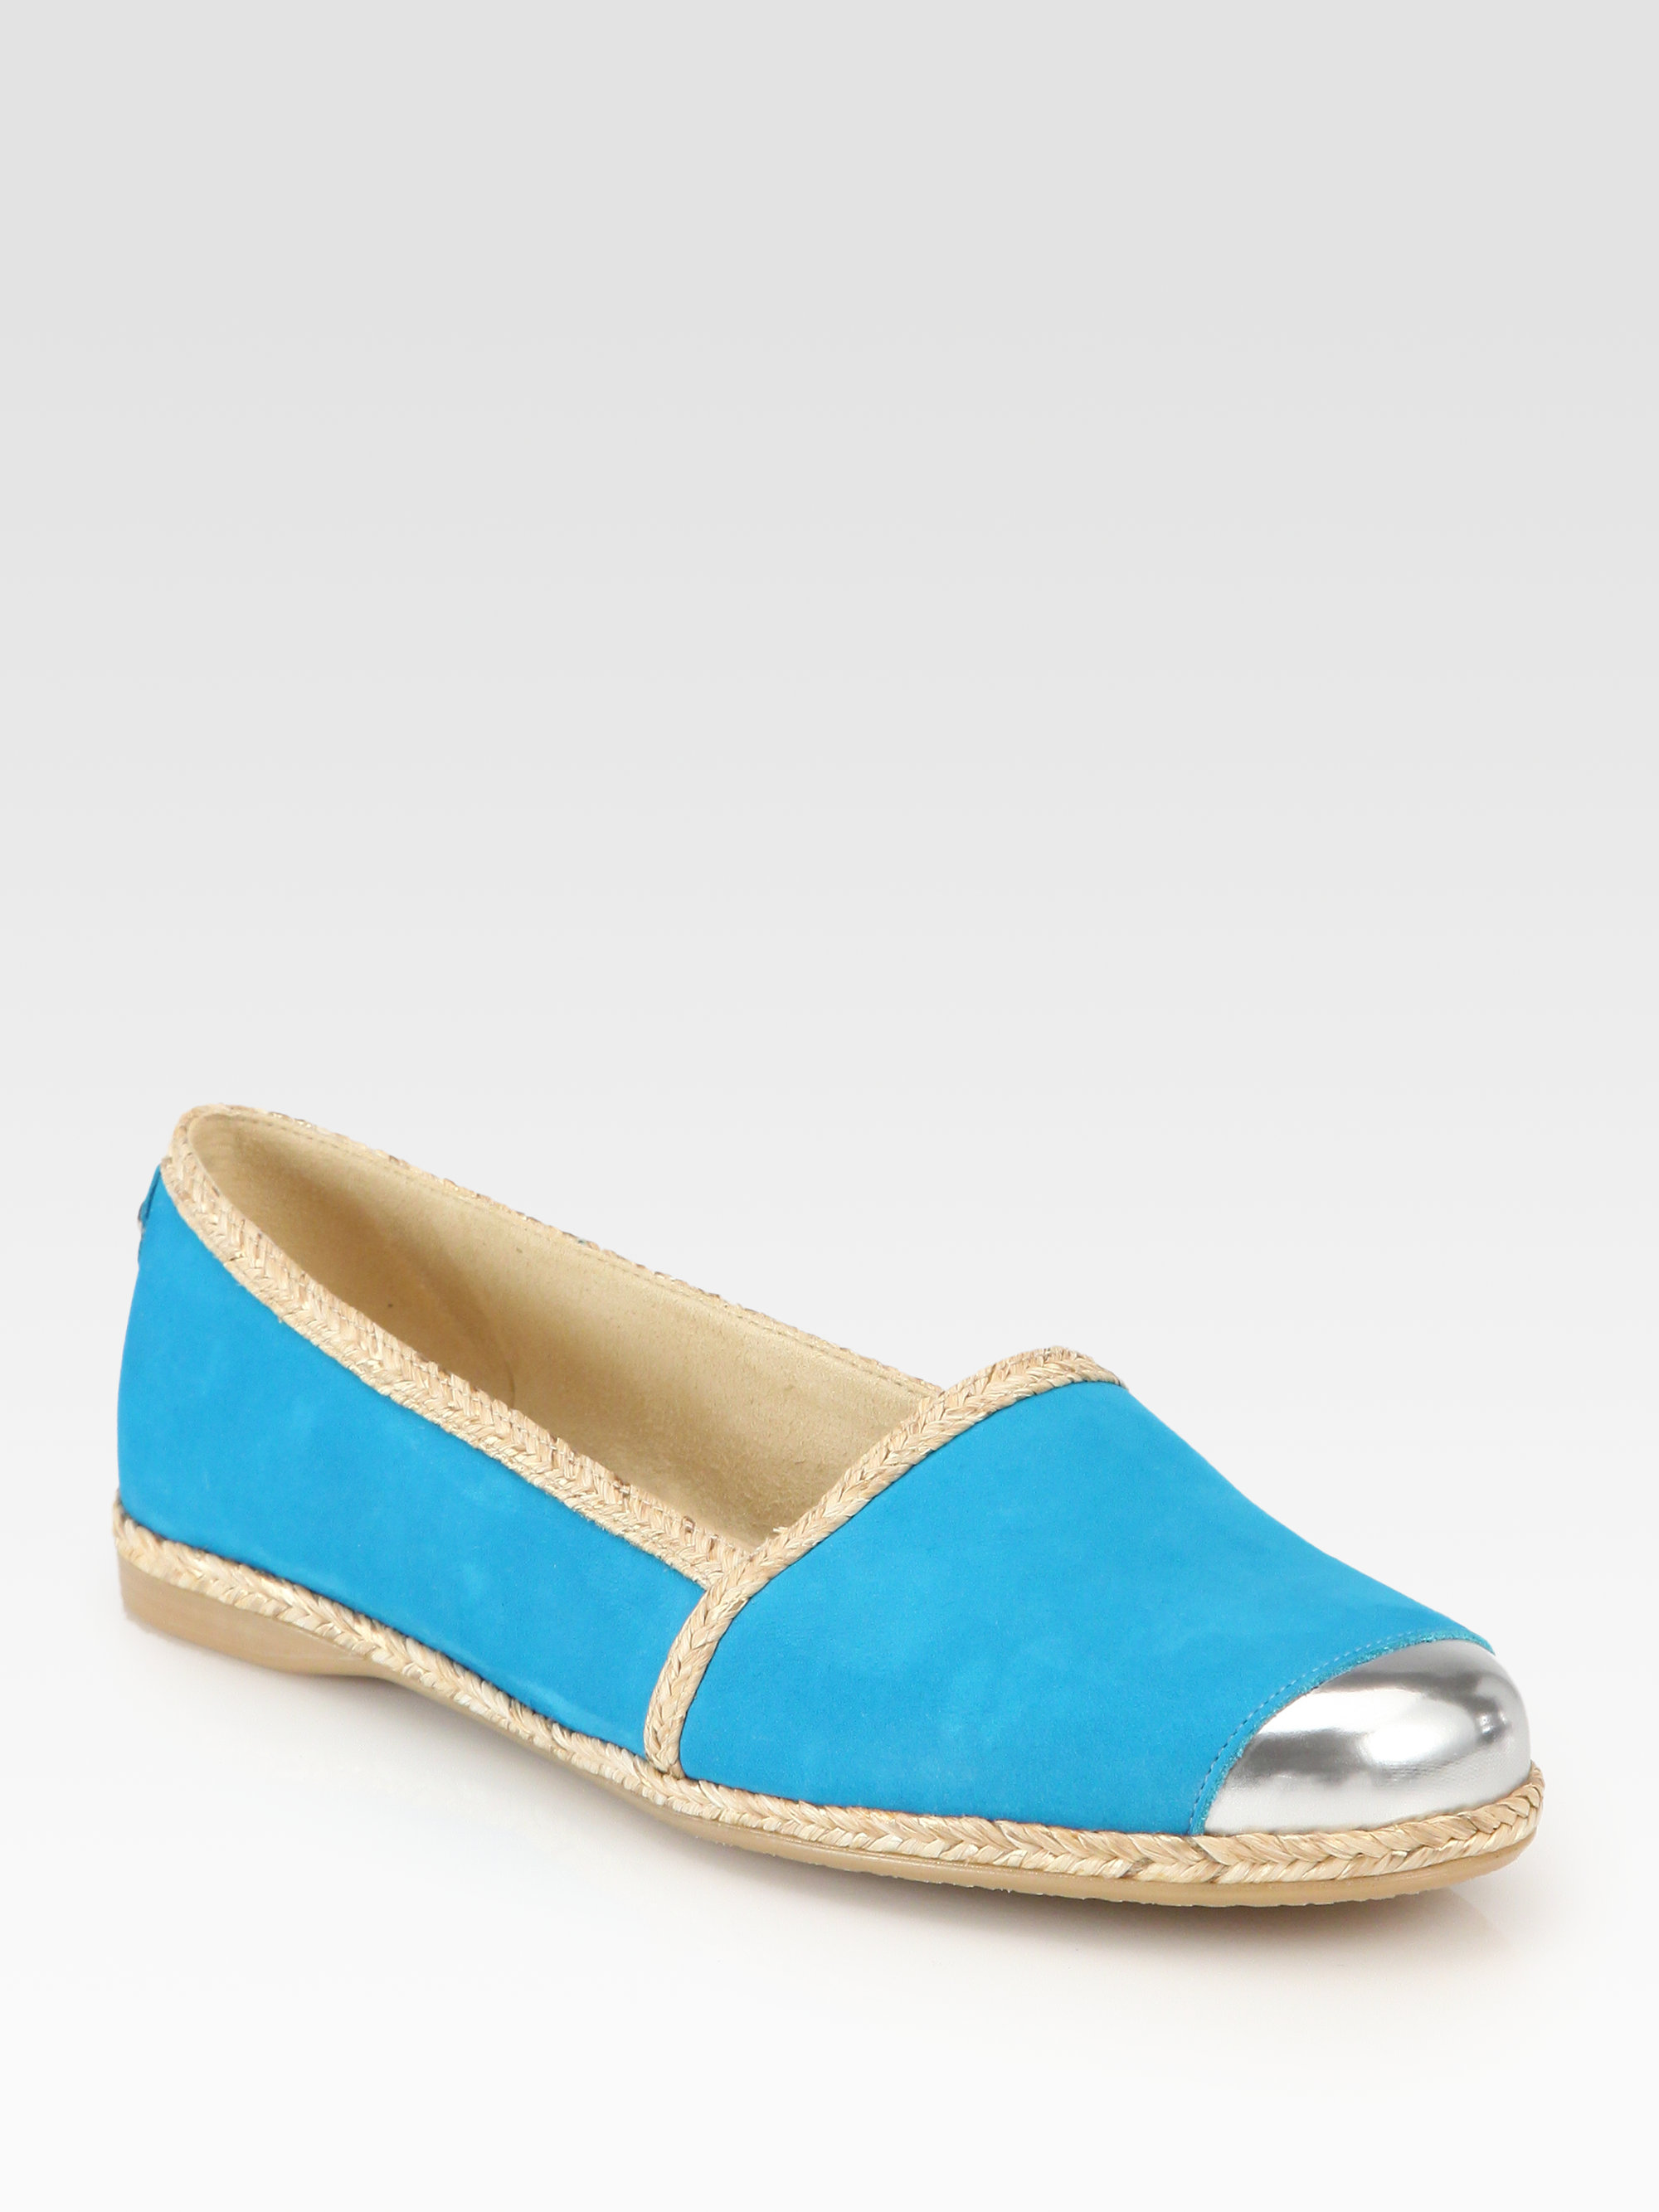 sale Manchester discount Manchester Stuart Weitzman Tipadrille Suede Flats free shipping low shipping official site online store for sale KtUoUpU